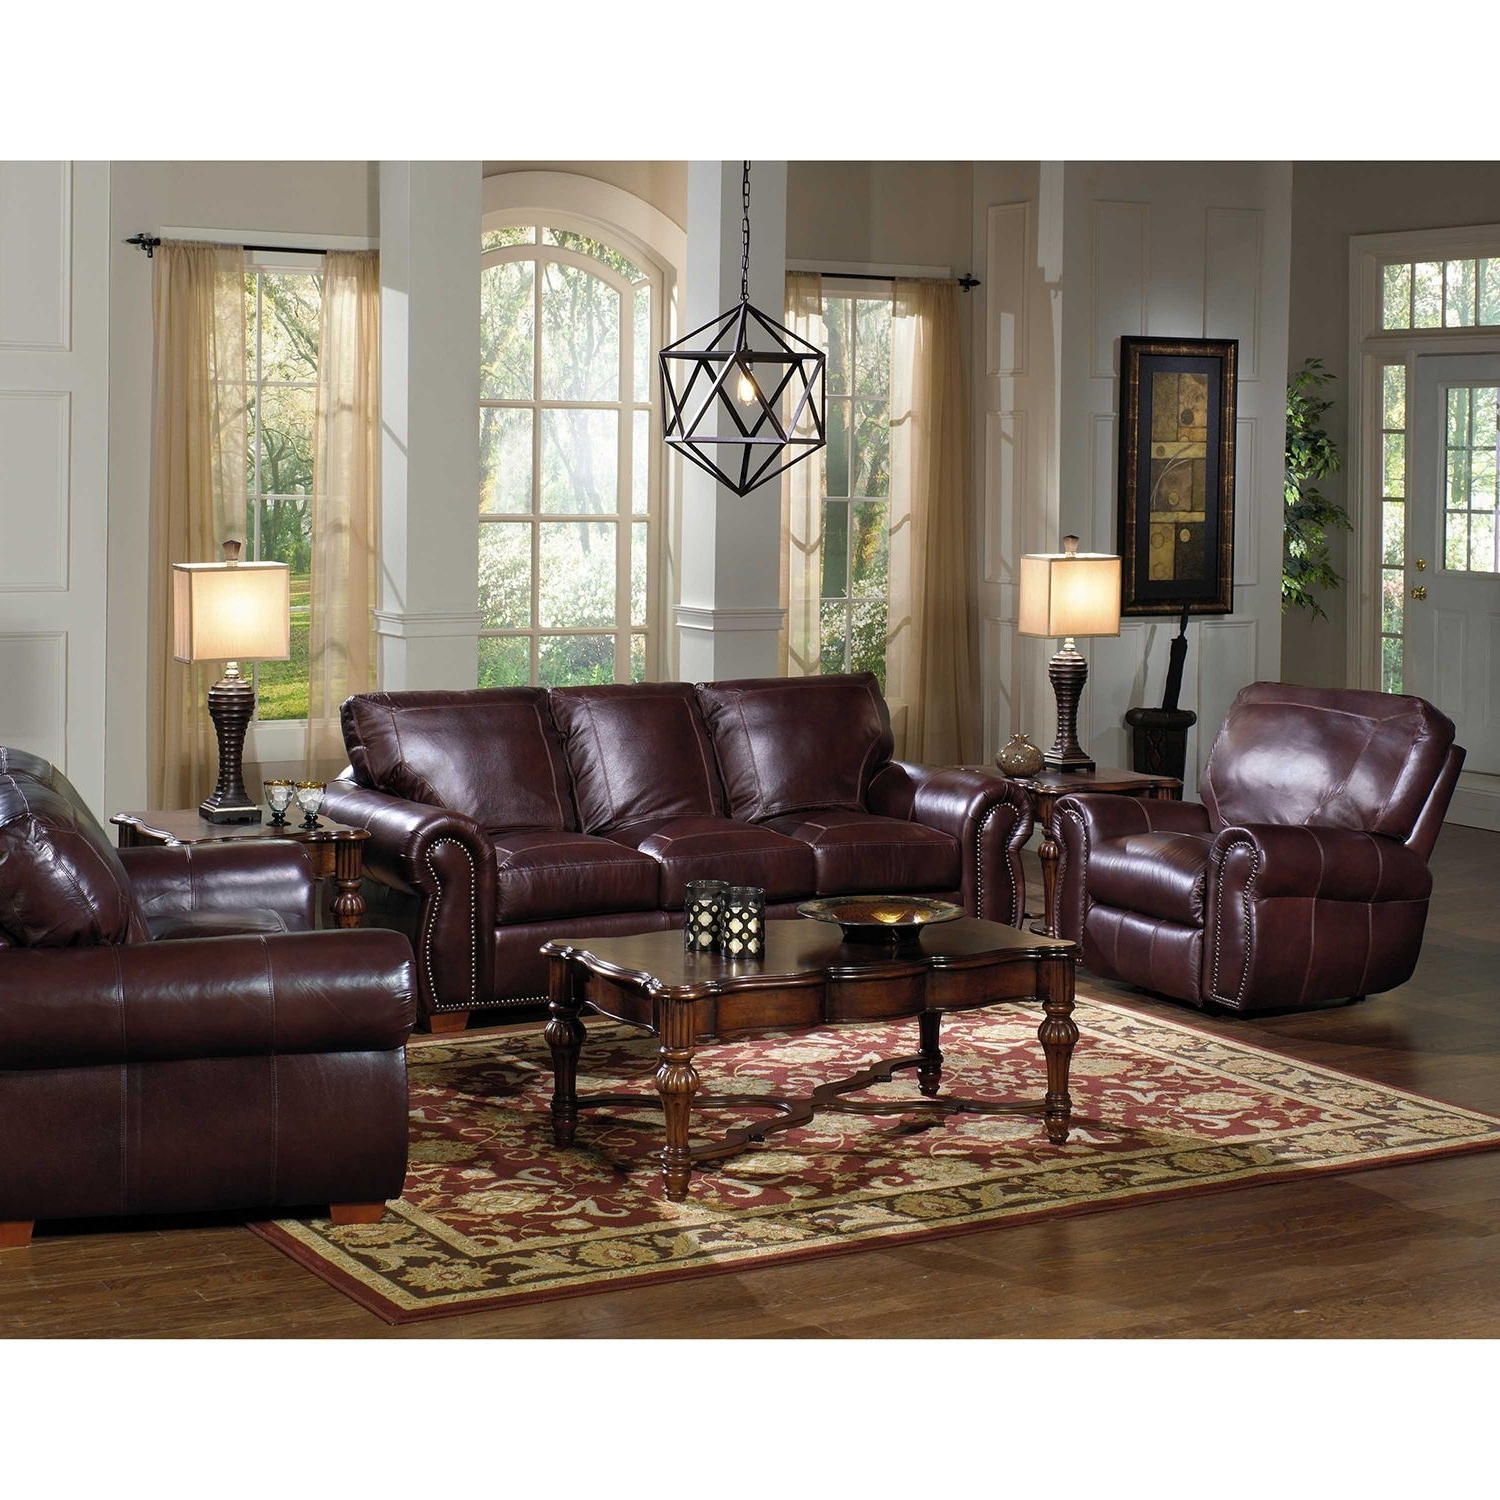 2017 Kingston Sectional Sofas Intended For Kingston Top Grain Leather Sofa, Loveseat And Recliner Living Room (View 1 of 15)